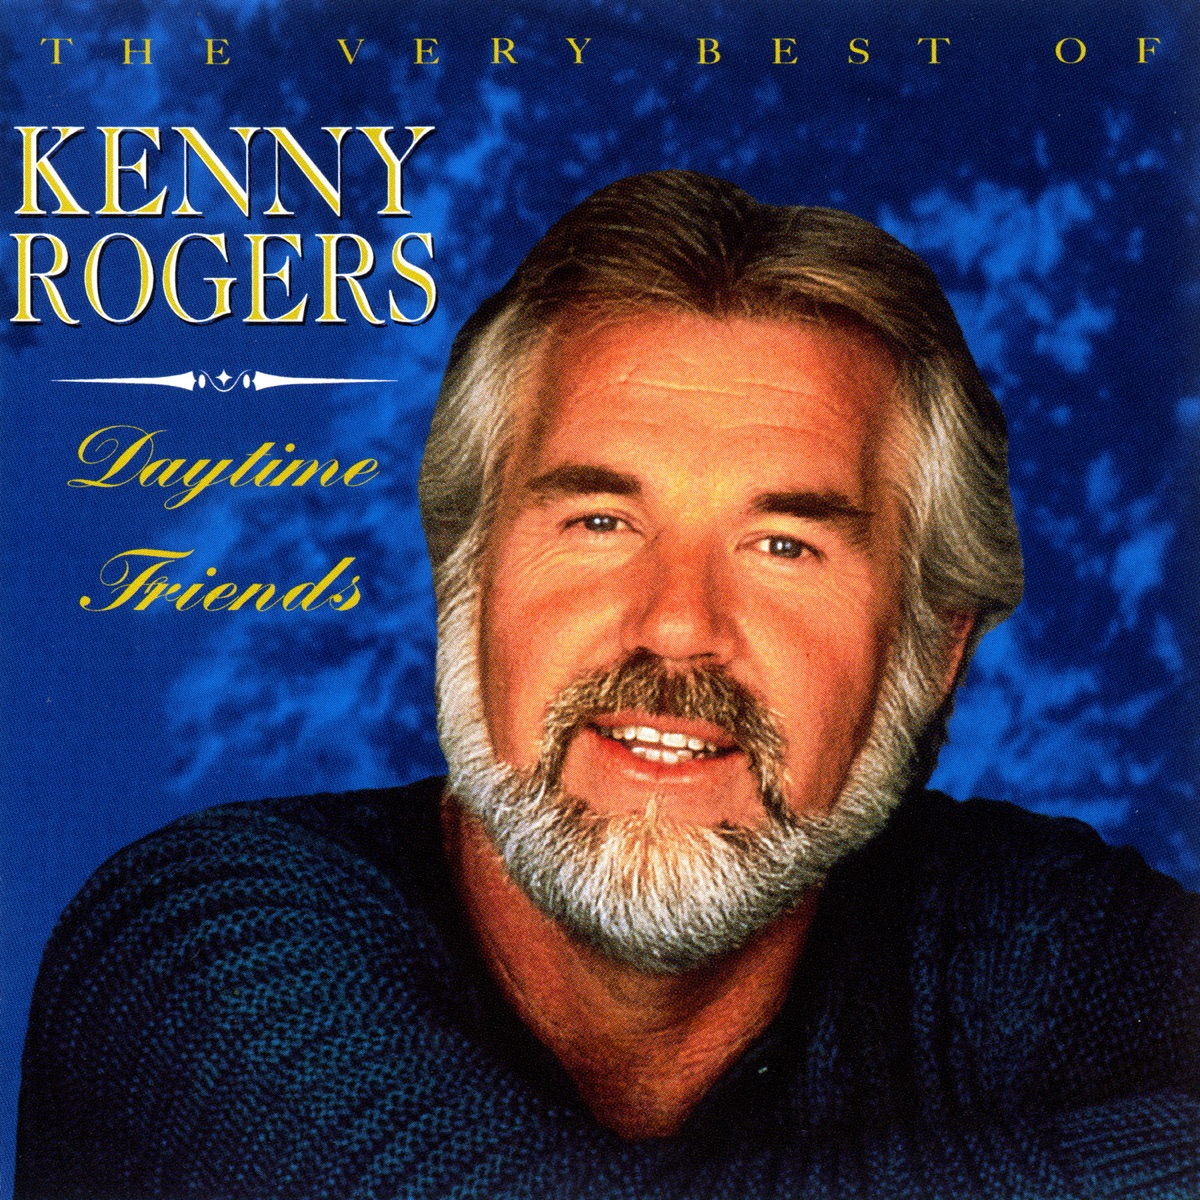 Daytime Friends - The Very Best of Kenny Rogers Album Cover by Kenny ...